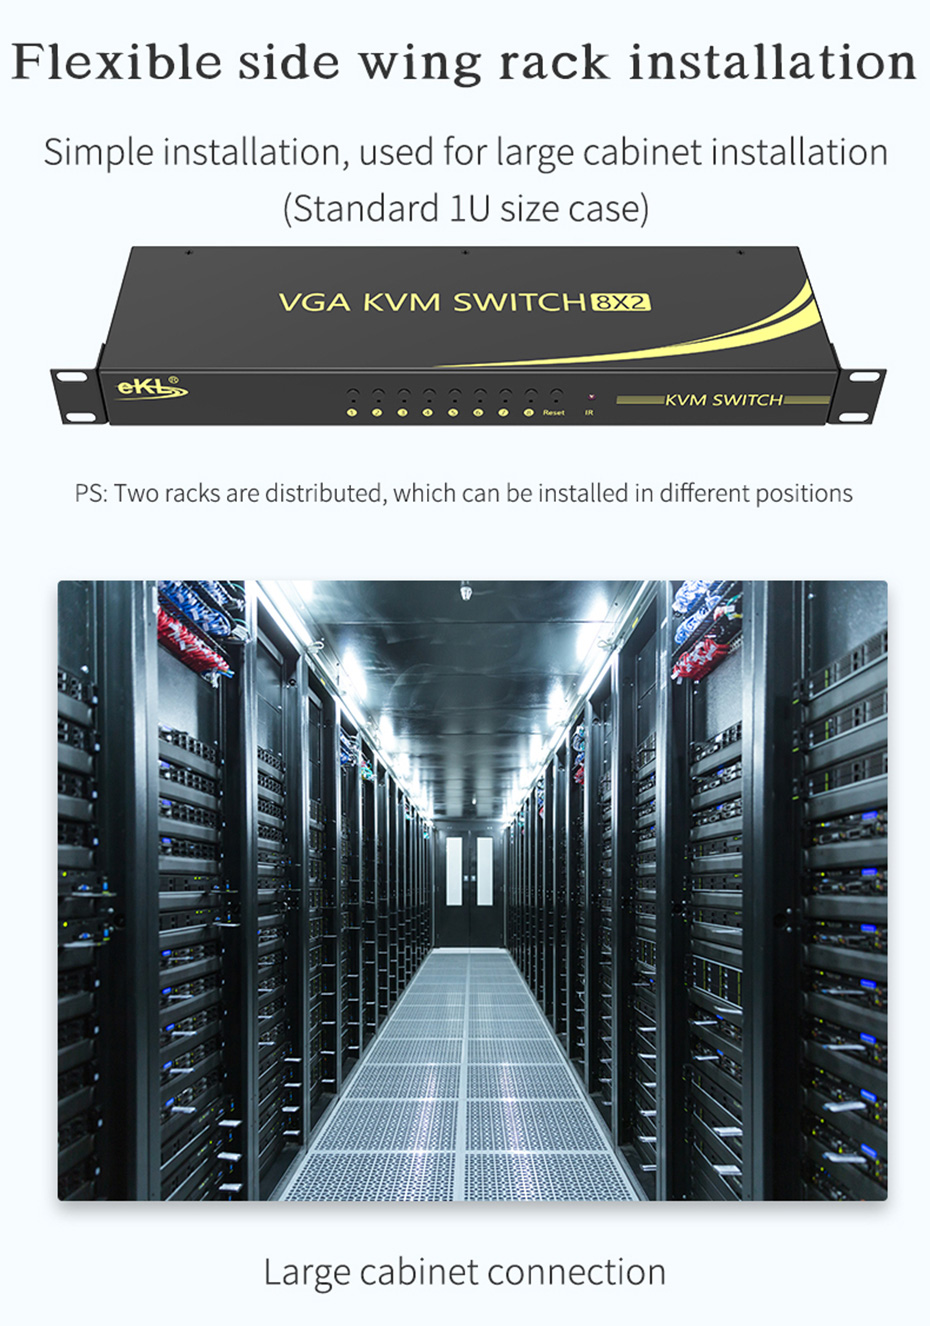 VGA KVM switch 8 in 2 out 81U supports side-wing rack installation